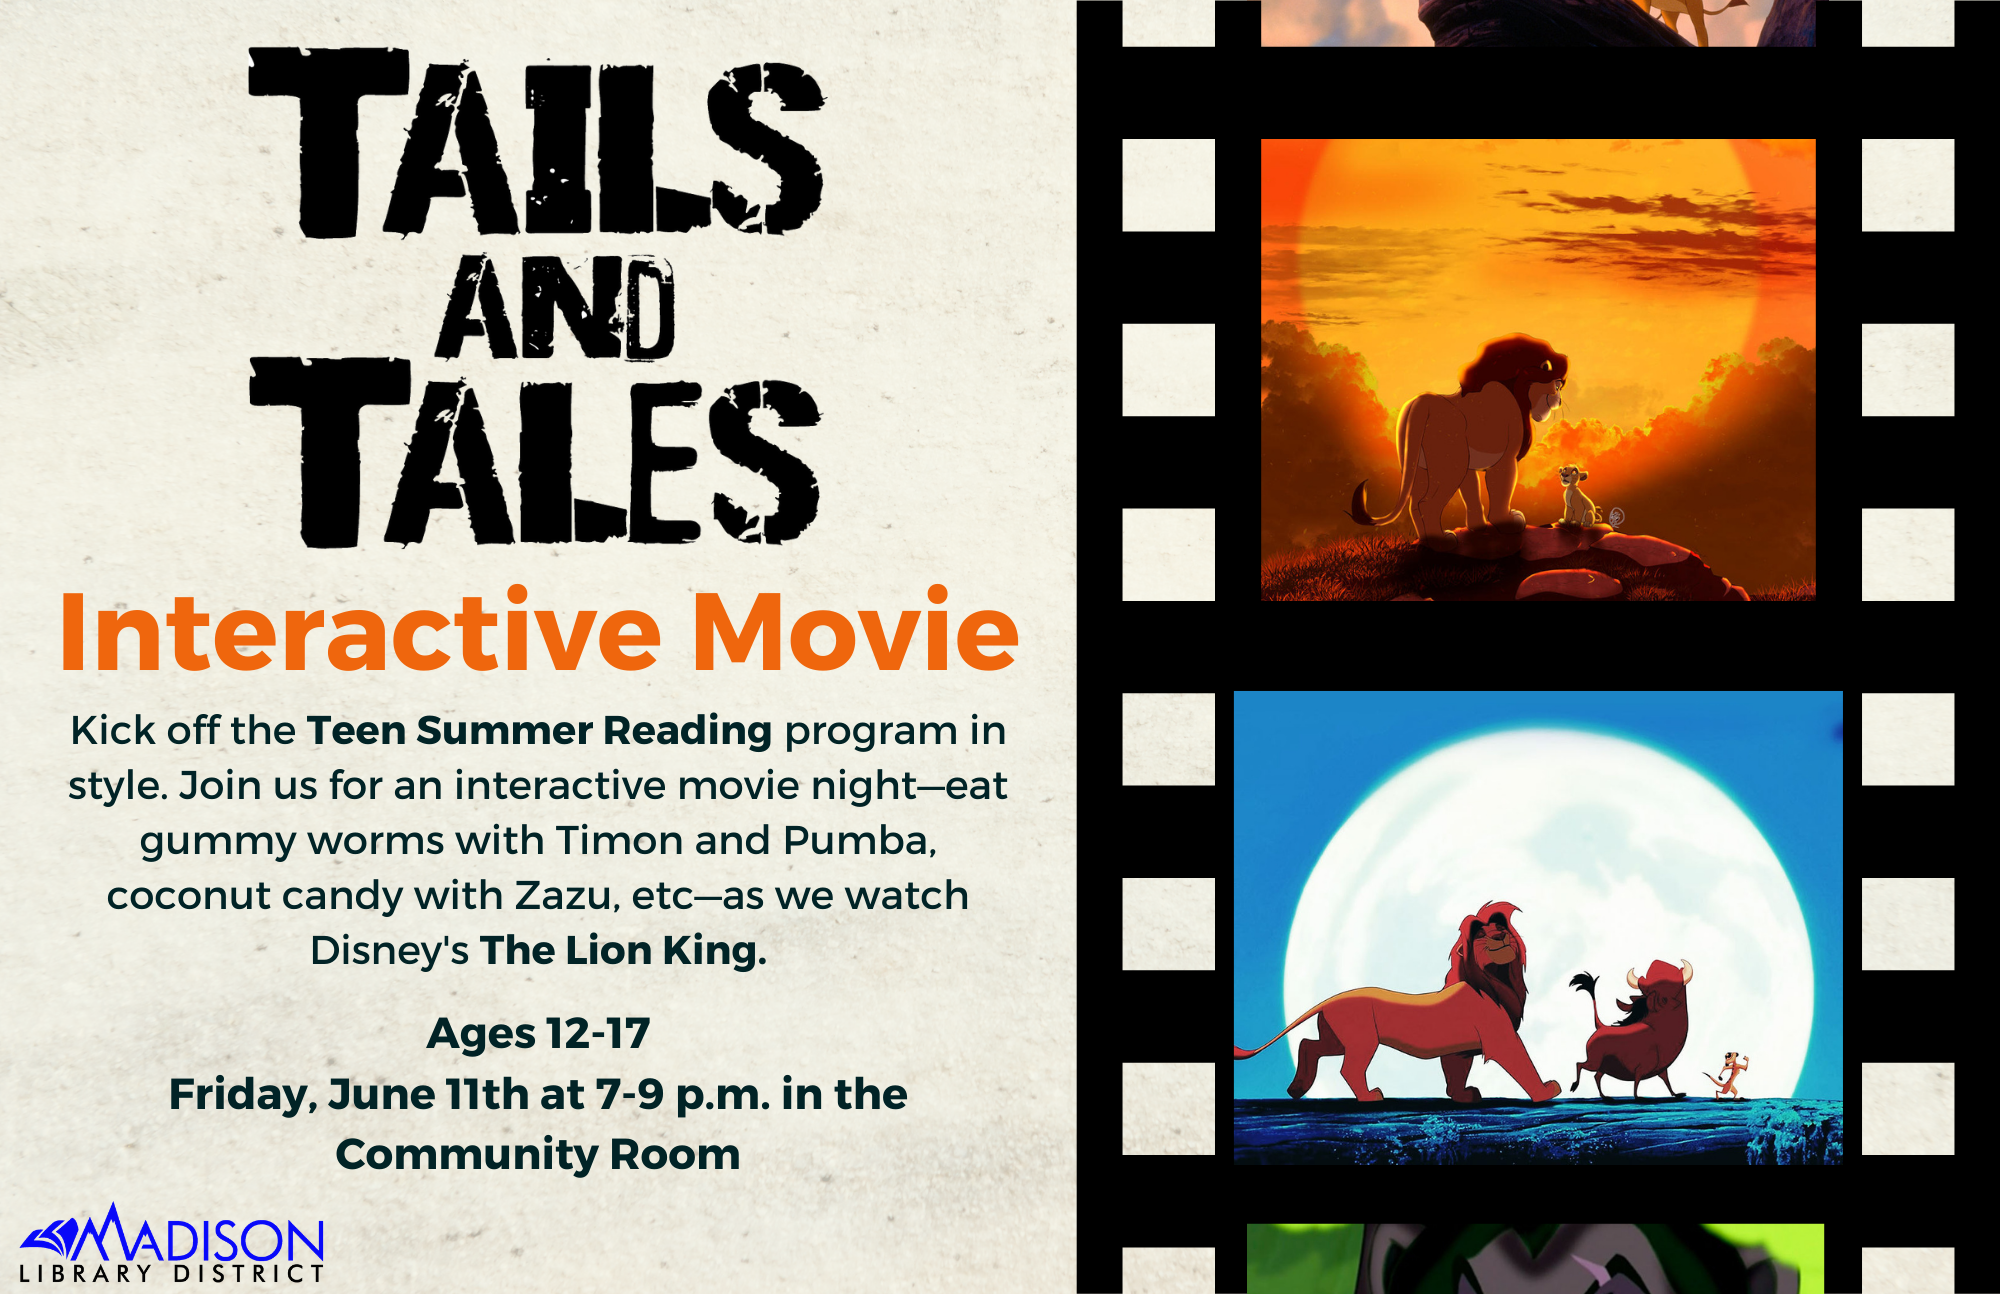 Tails and Tales Interactive Movie. Kick off the Teen Summer Reading program in style. Join us for an interactive movie night—eat gummy worms with Timon and Pumba, coconut candy with Zazu, etc—as we watch Disney's The Lion King.Ages 12-17 Friday, June 11th at 7-9 p.m. in the Community Room